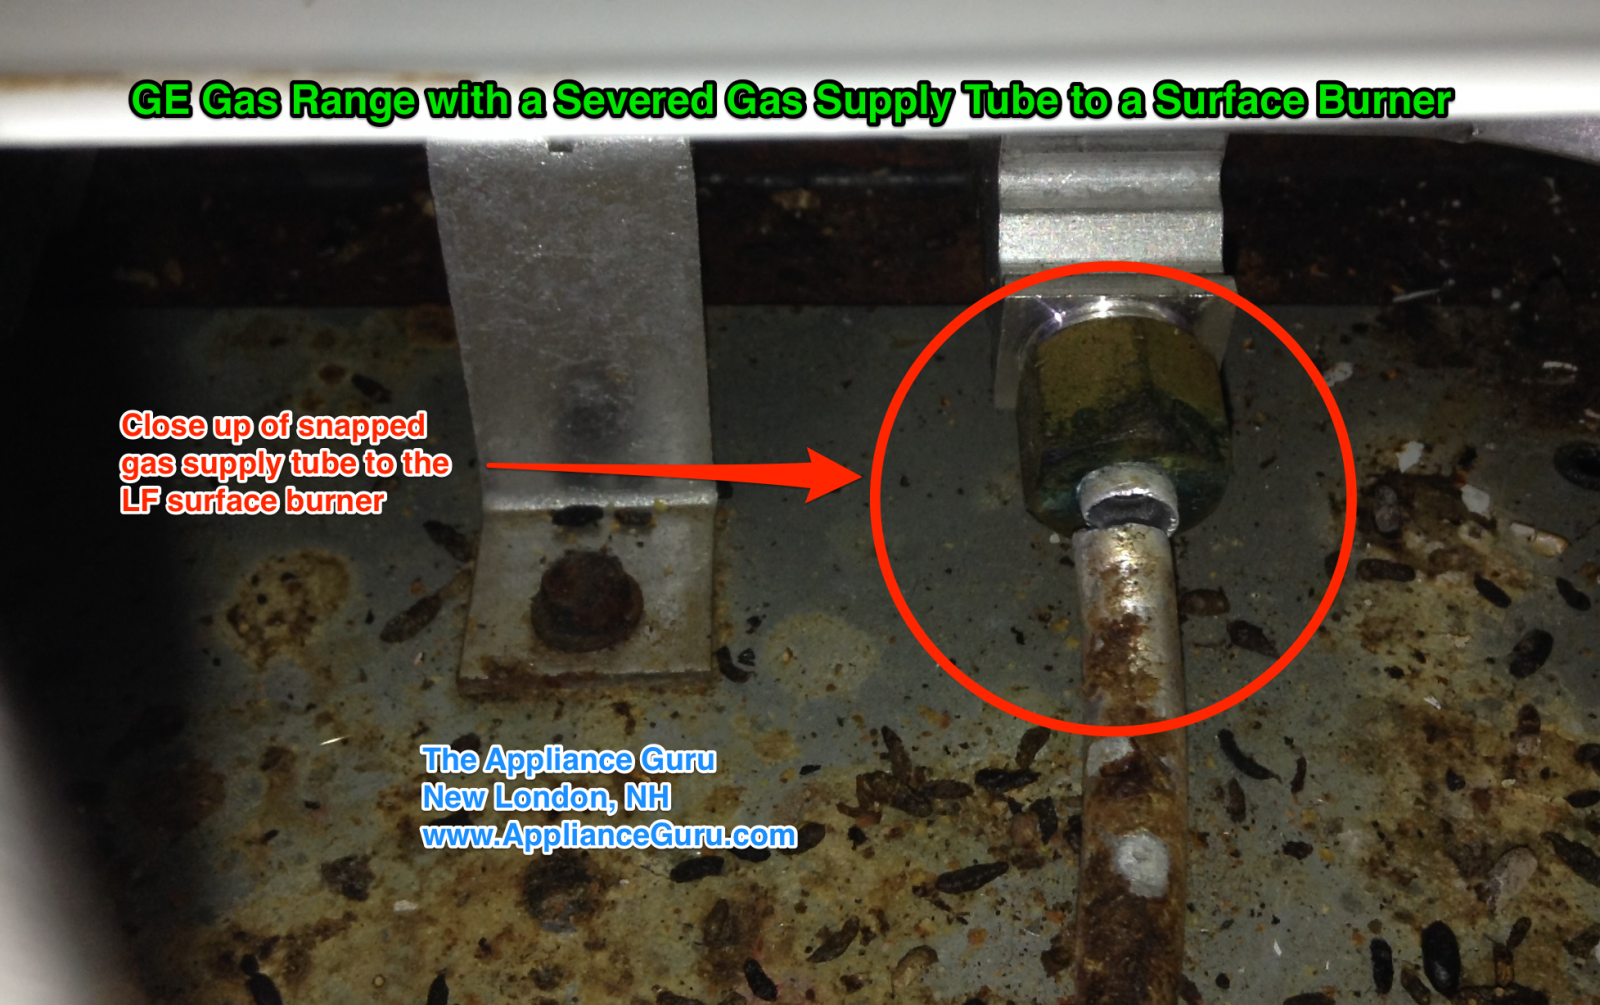 GE Gas Range with A Severed Gas Supply Tube To A Surface Burner